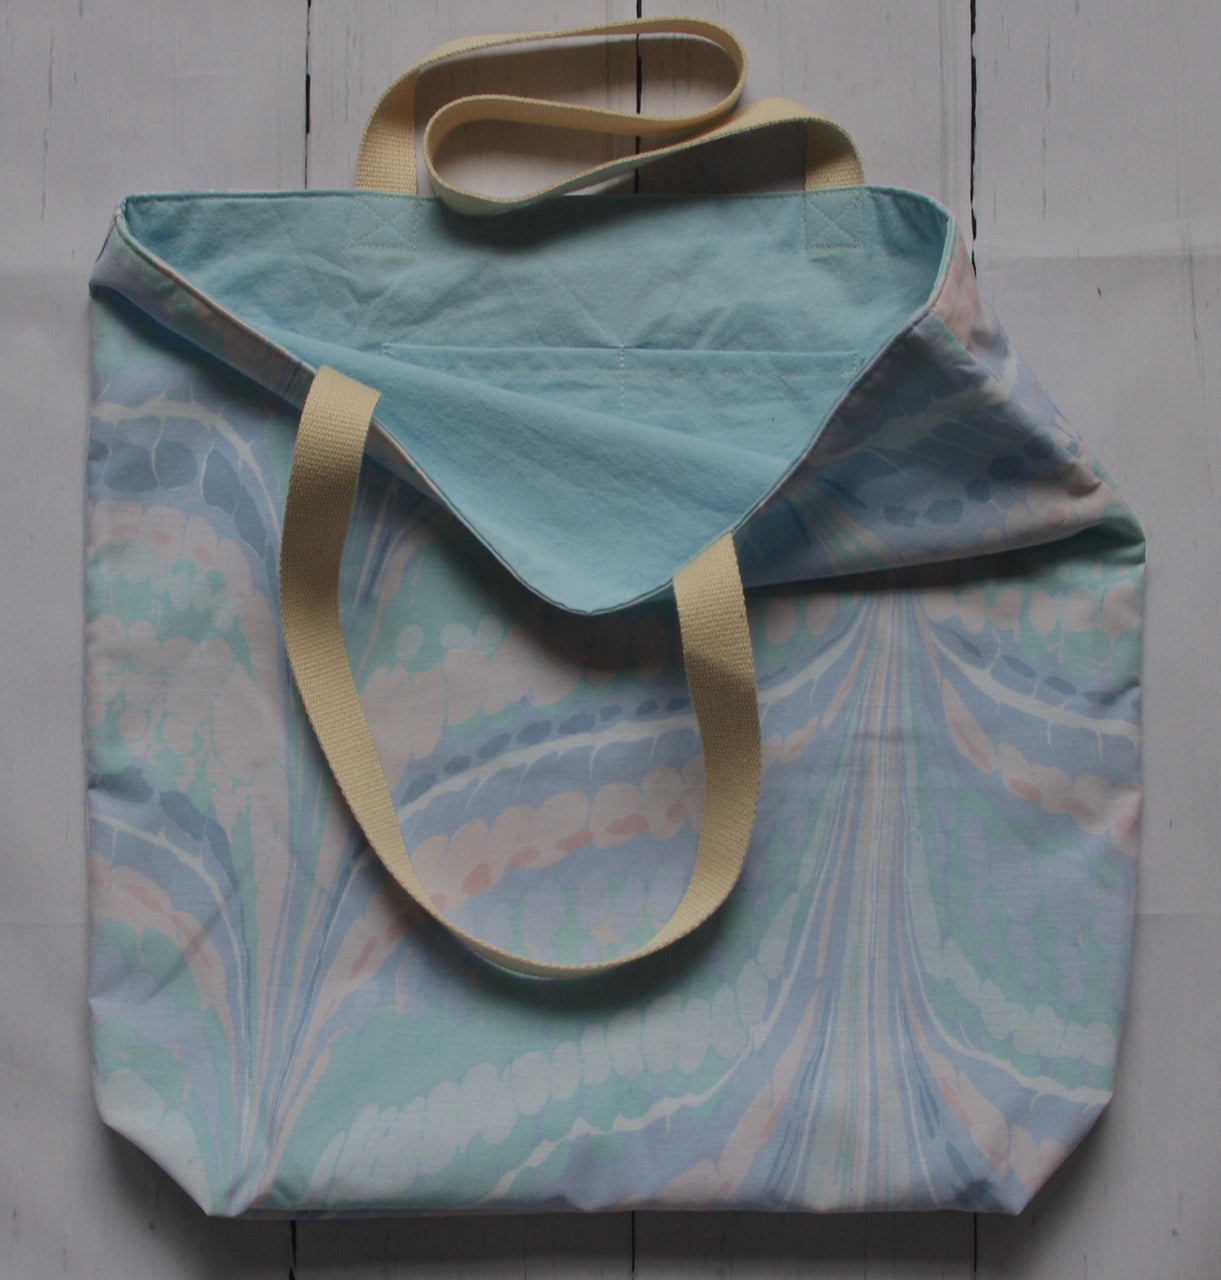 pastel-marble-effect-hilary-hope-tote-bag-exterior-glimpse-of-interior